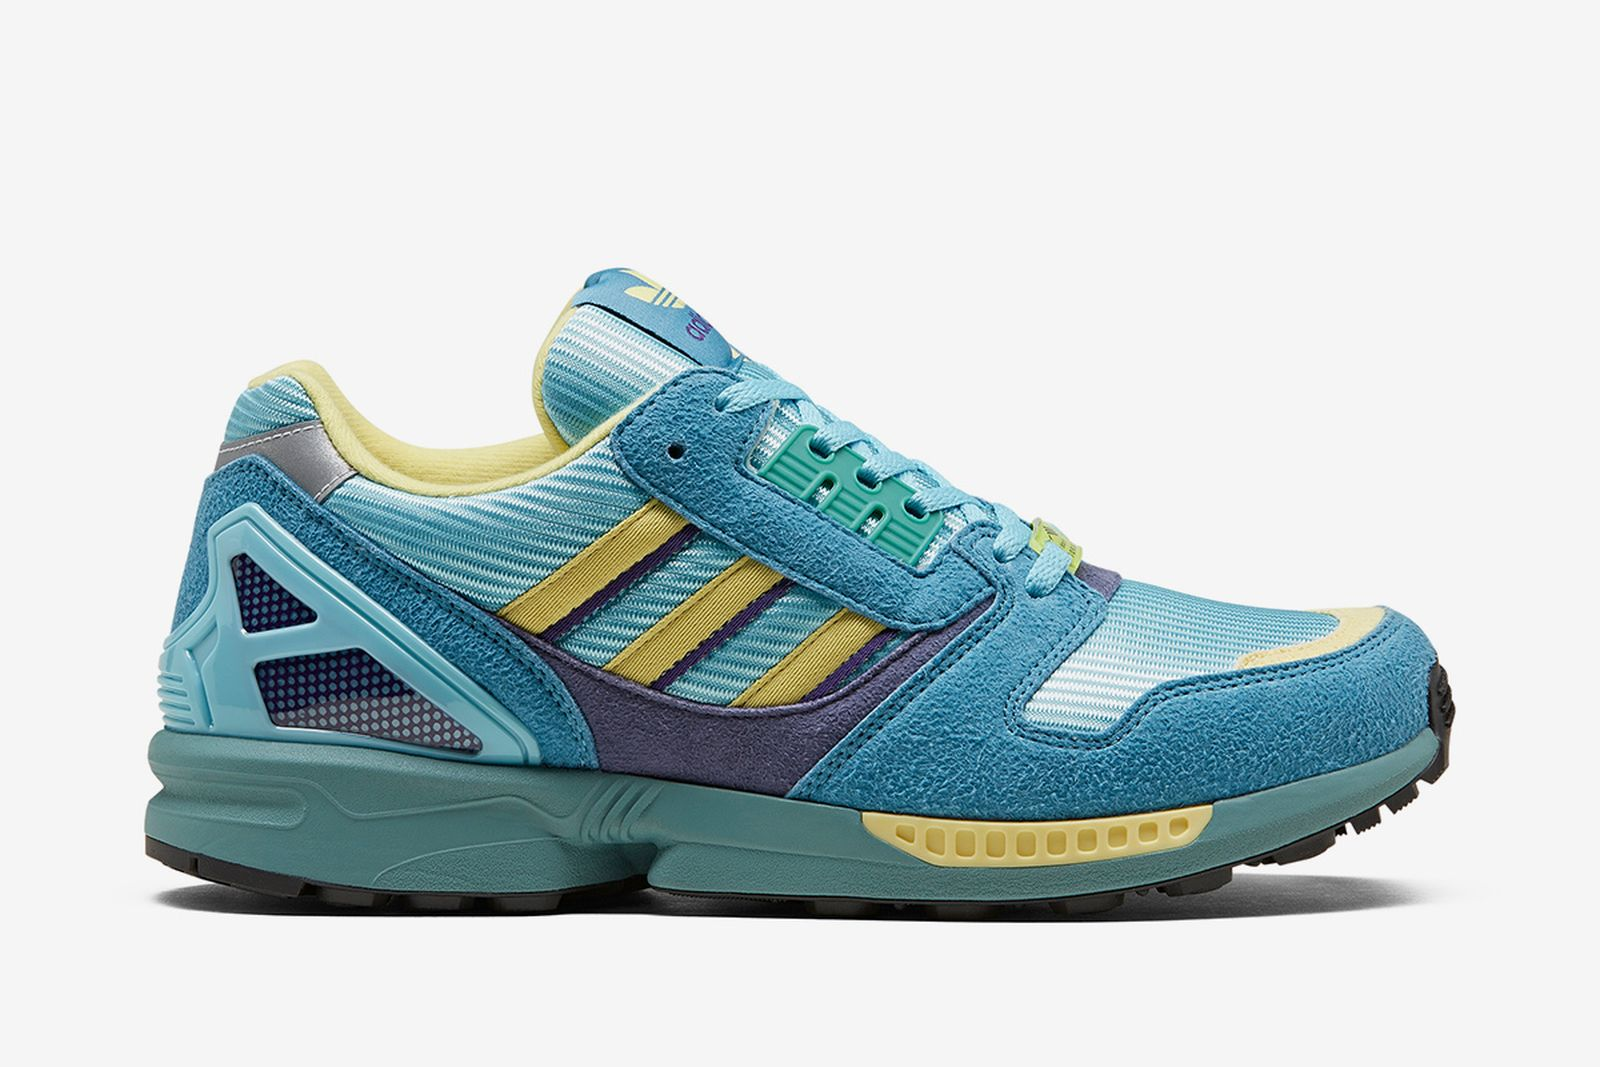 Autonomía Megalópolis ángel  adidas Consortium ZX 8000 OG: Where to Buy This Week